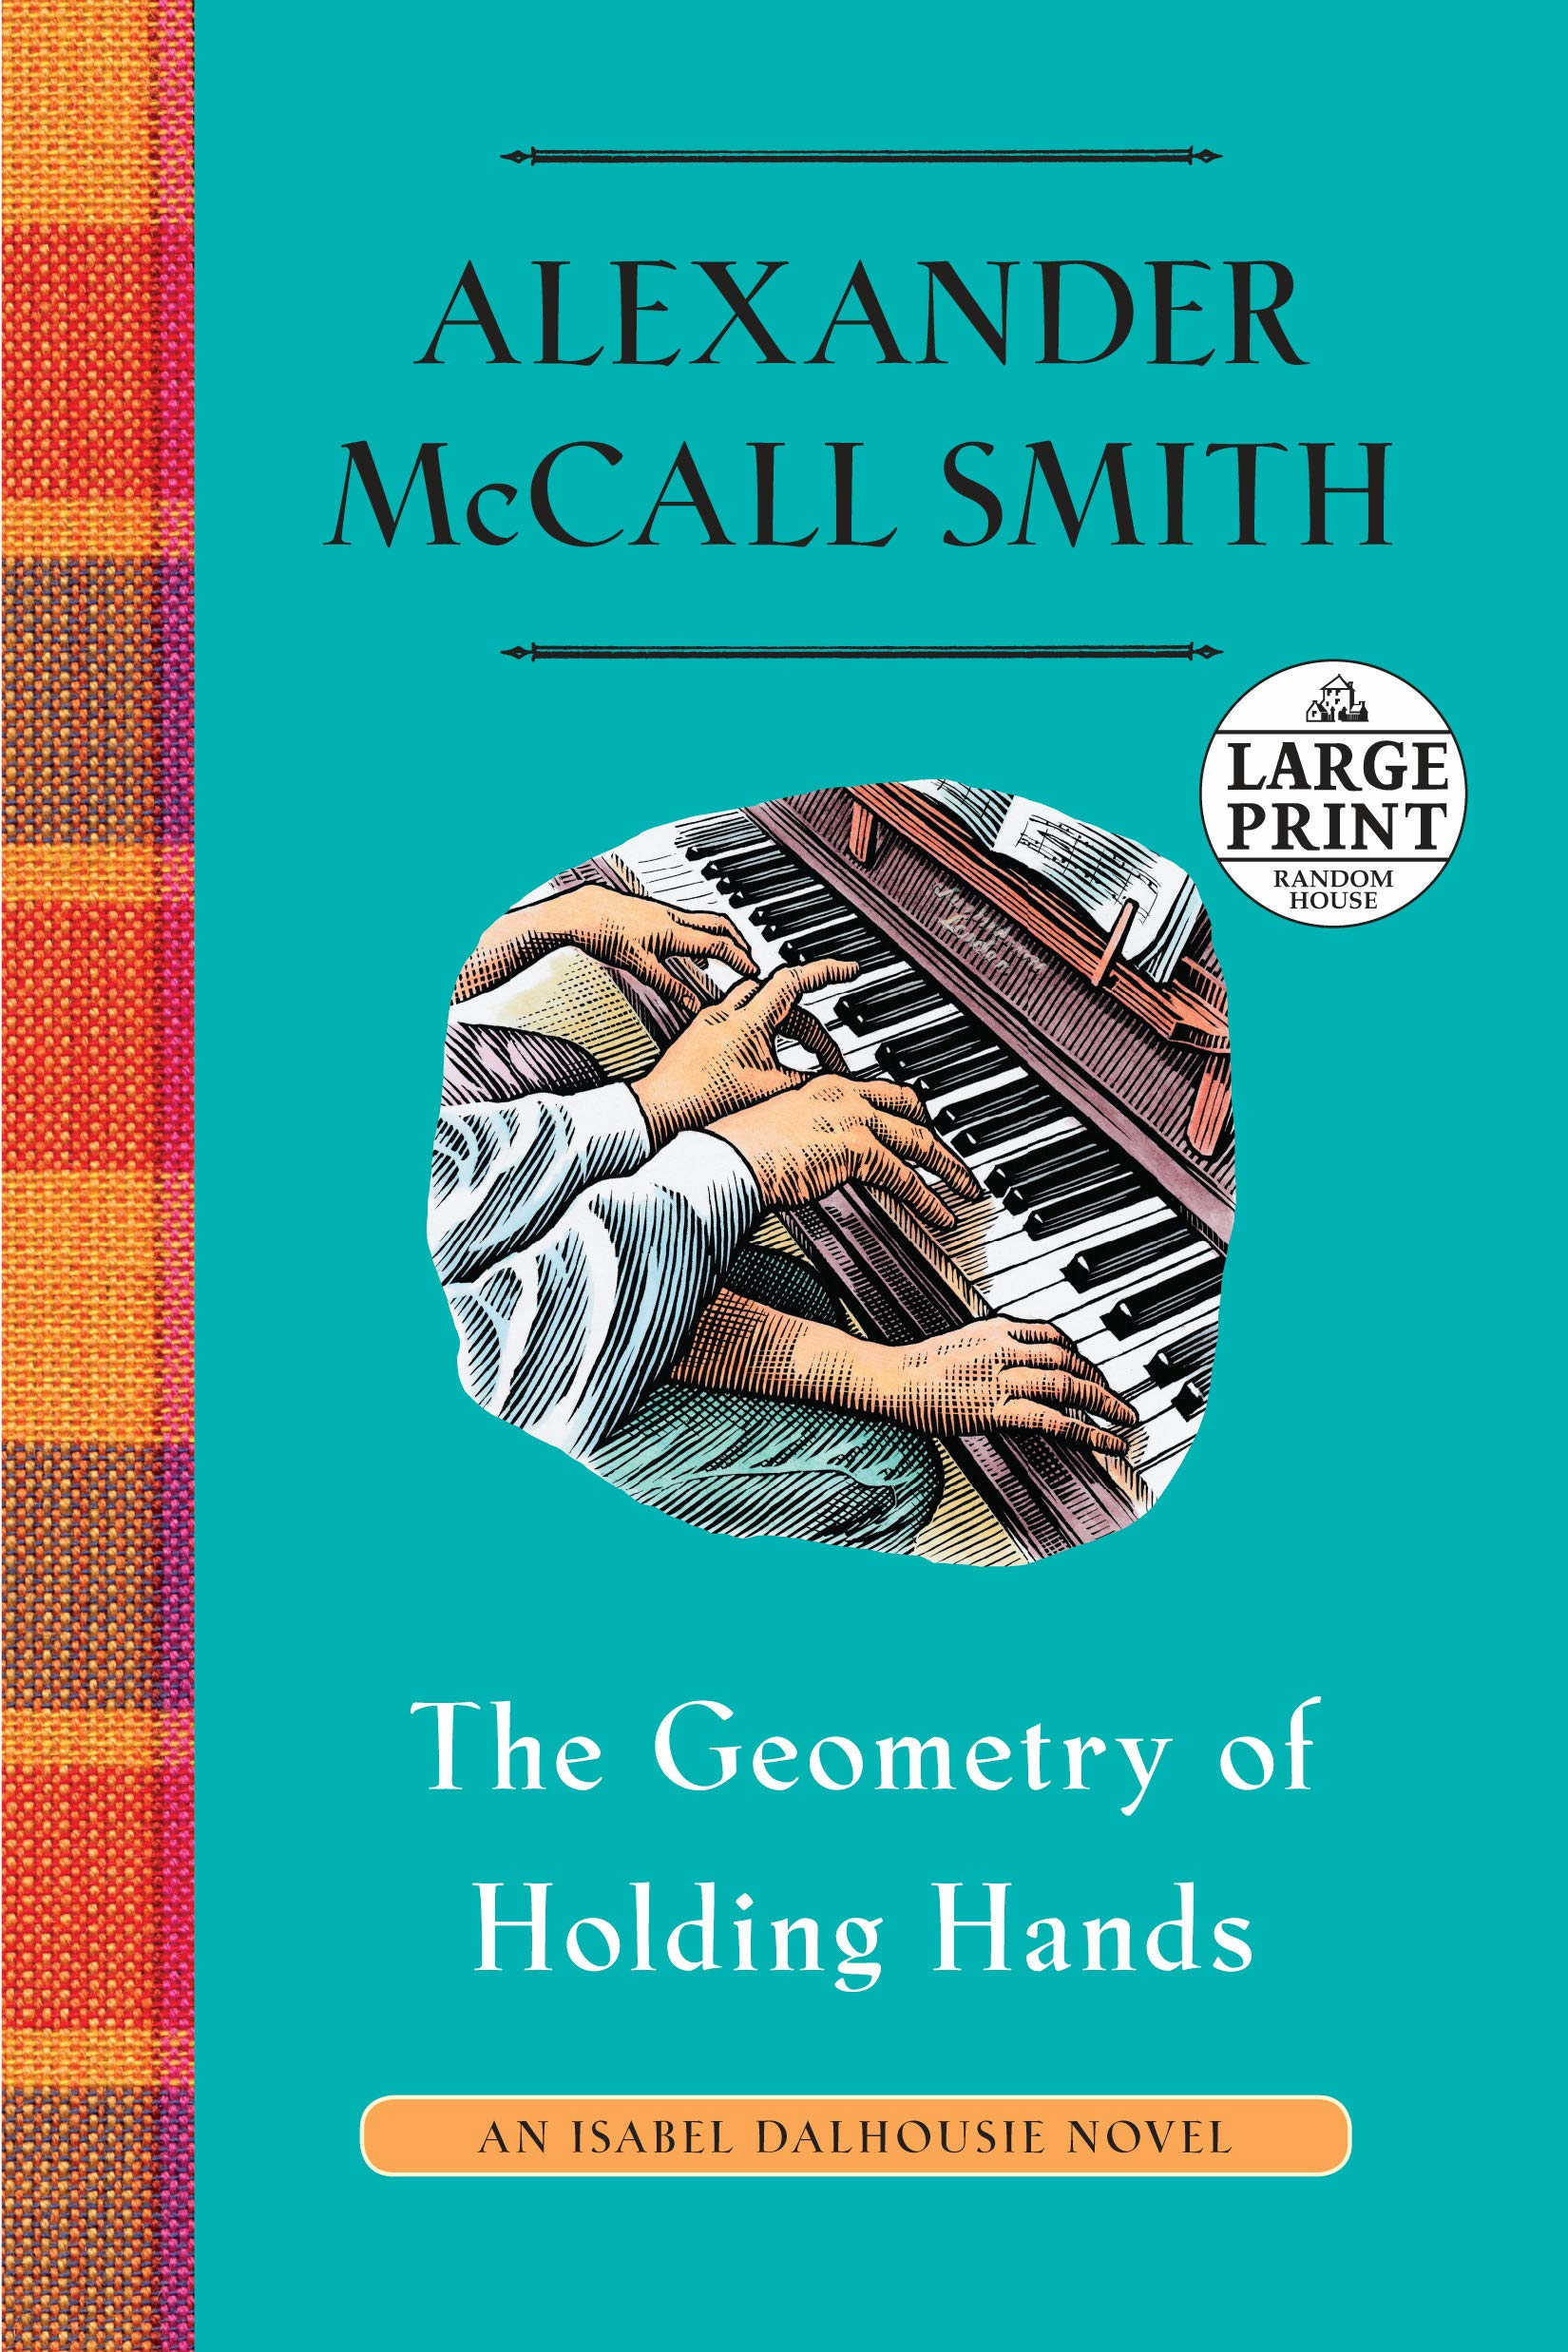 The geometry of holding hands by Alexander McCall Smith,Little Brown, Rs 699.